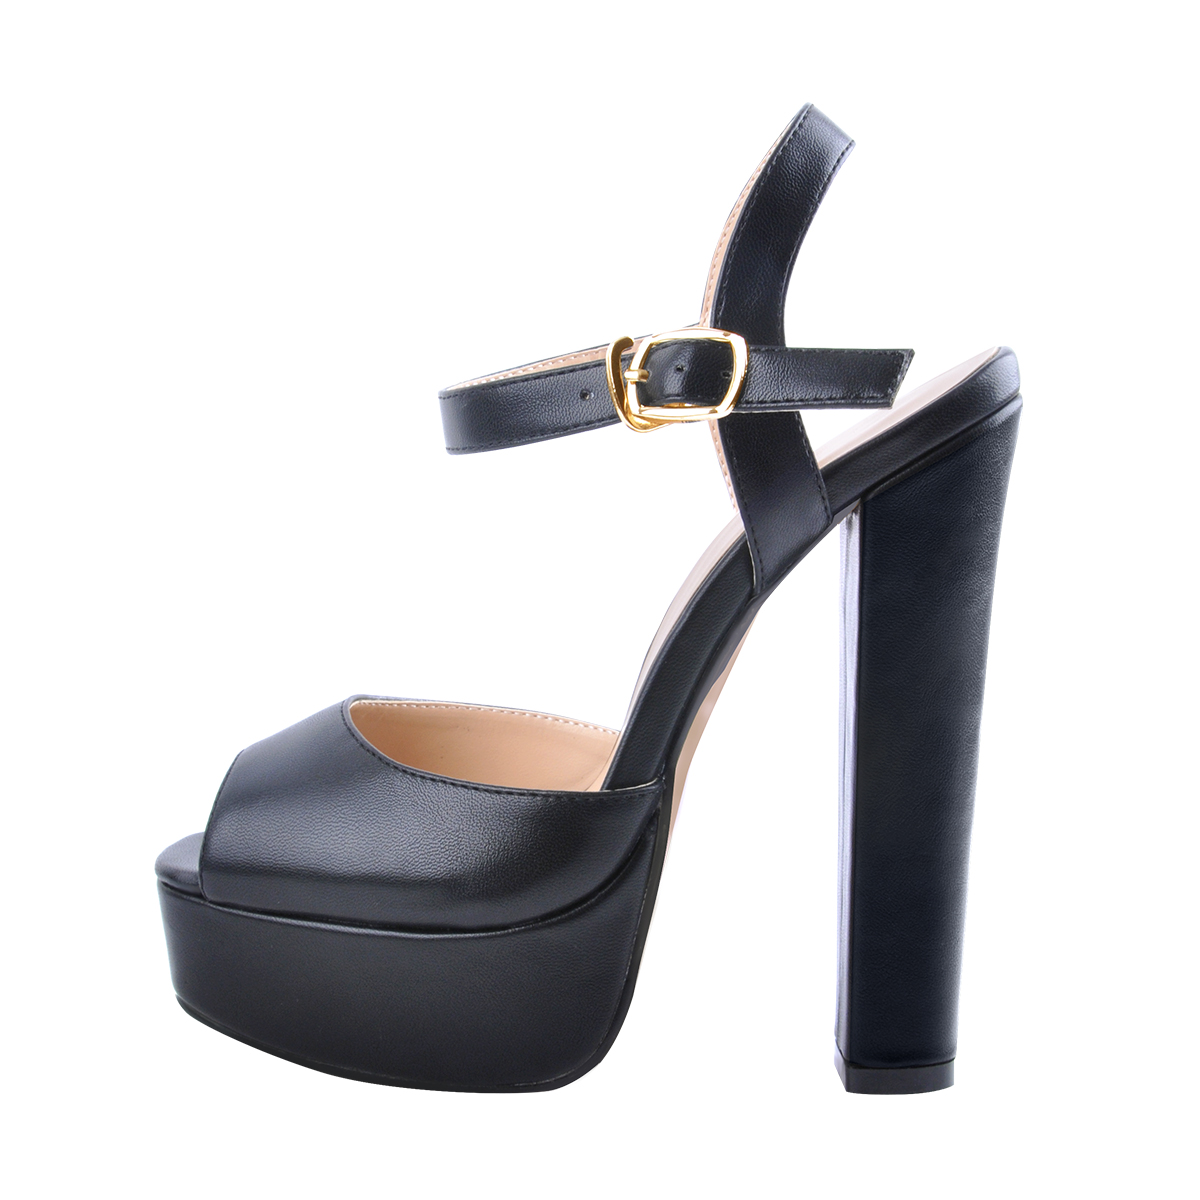 New Women/'s Ankle Strap Chunky Pump High Heel Sandals Party Dress Open Toe Shoes